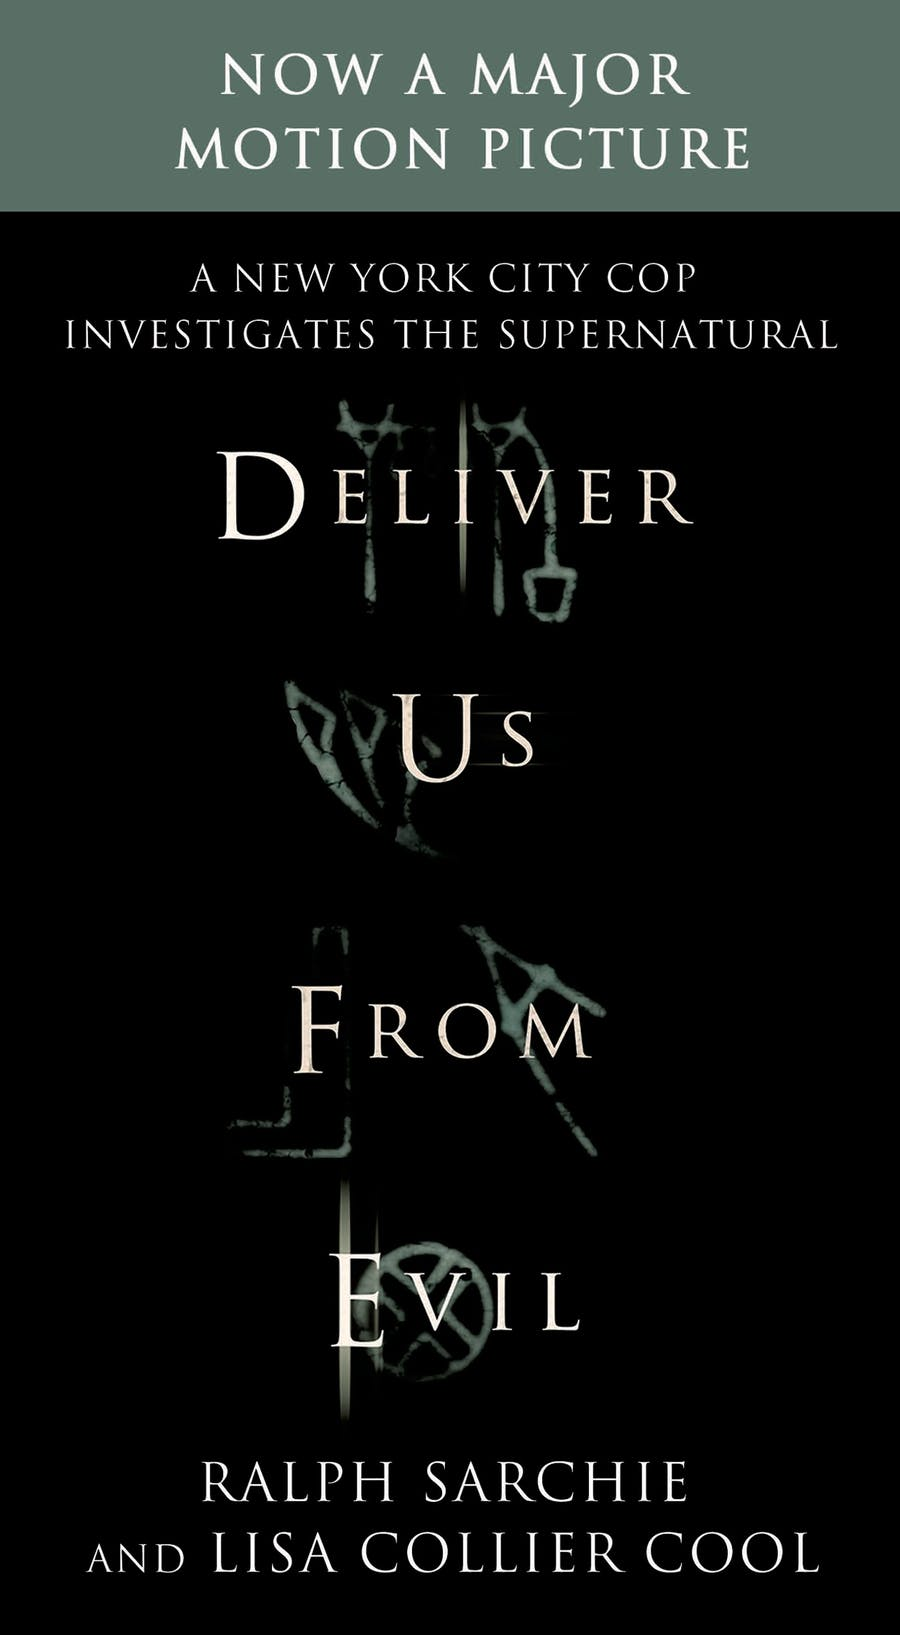 Deliver Us From Evil by Ralph Sarchie and Lisa Collier Cool